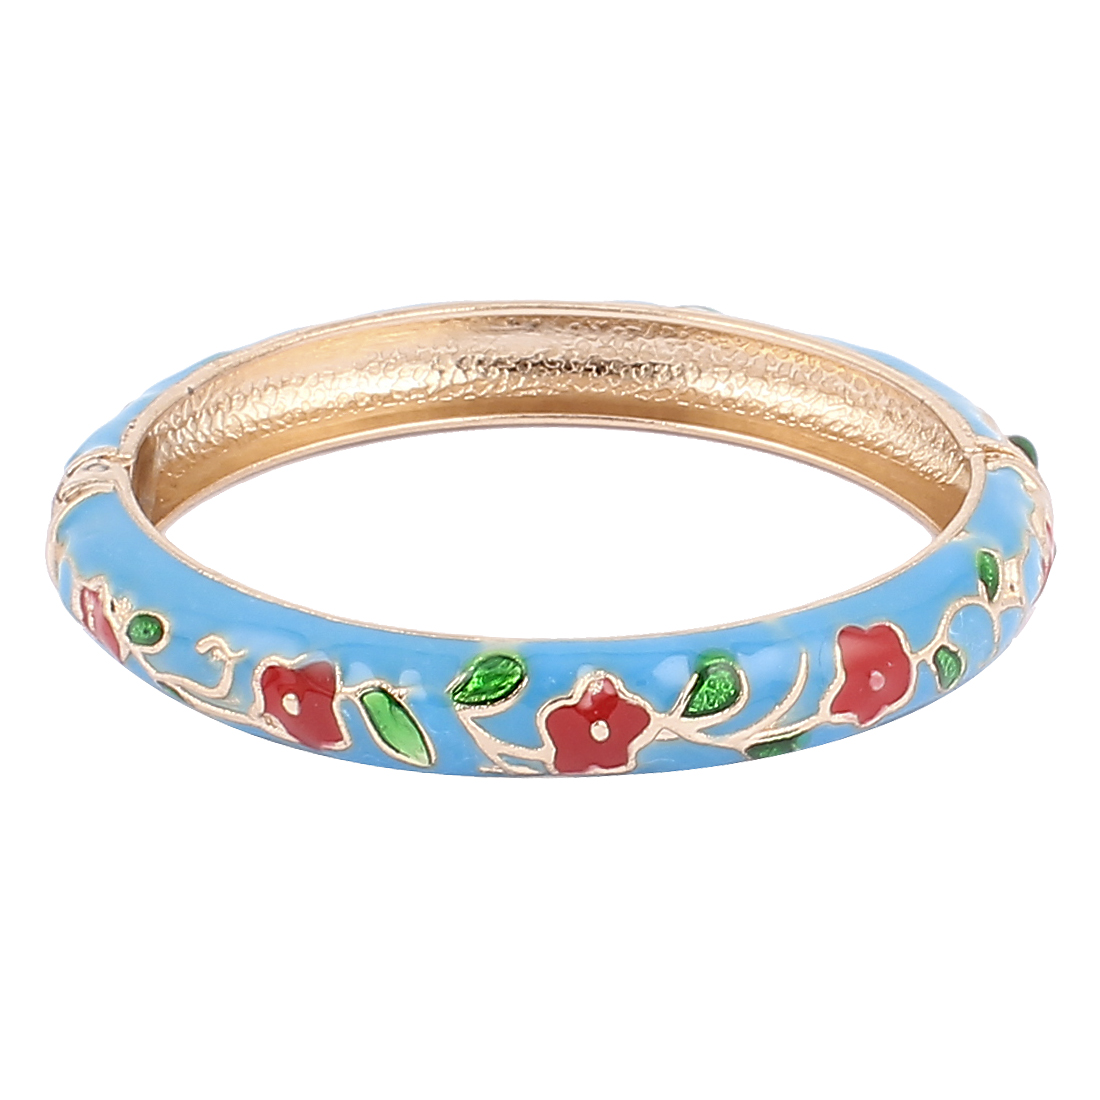 Woman Spring Hinged Round Cuff Flower Pattern Enamel Bracelet Bangle Teal Blue